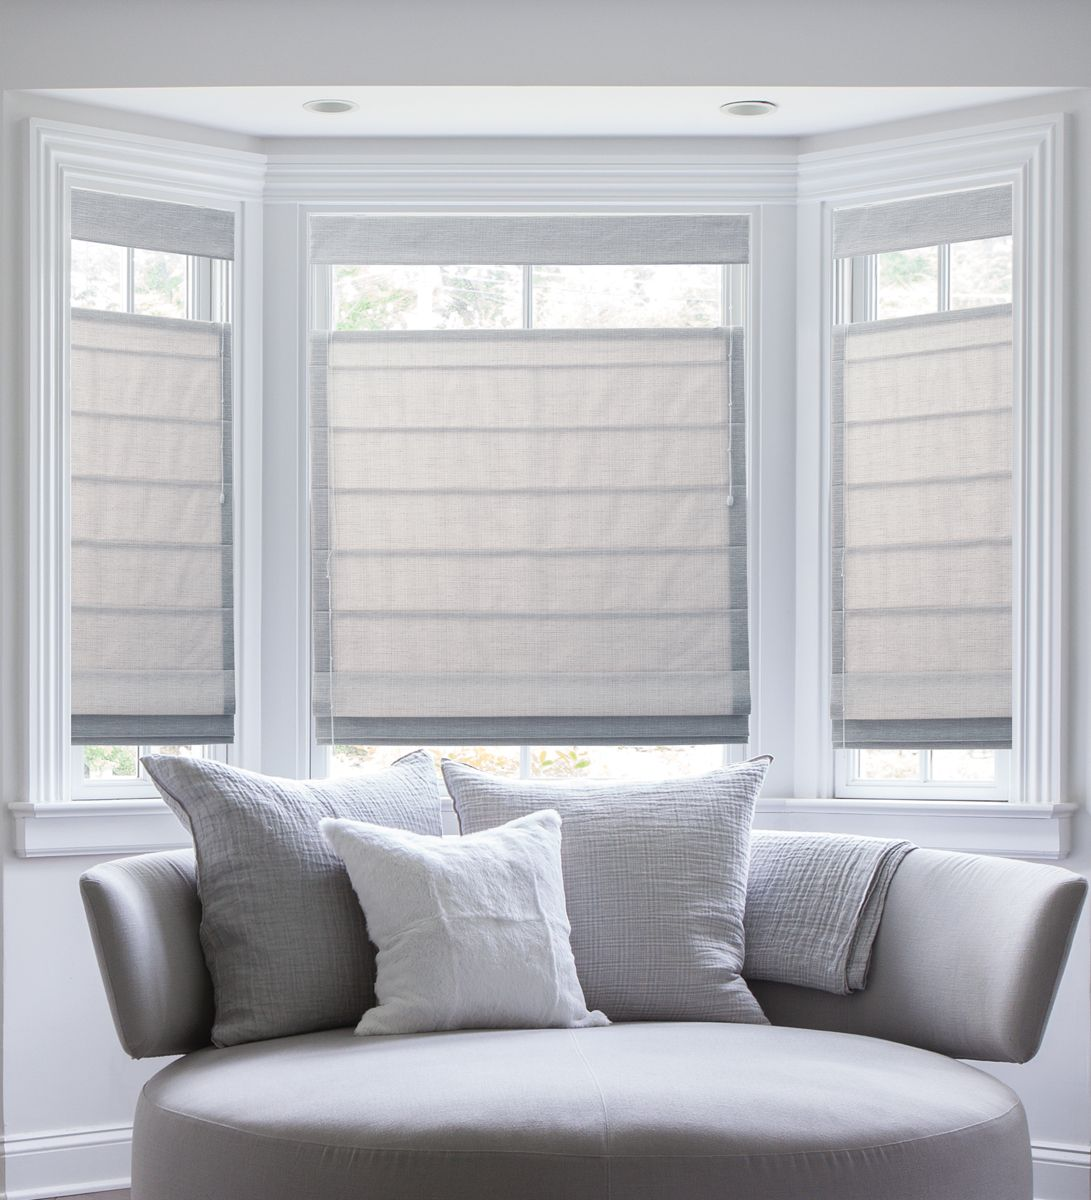 TopDown/BottomUp Roman Shades perfect for maintaining